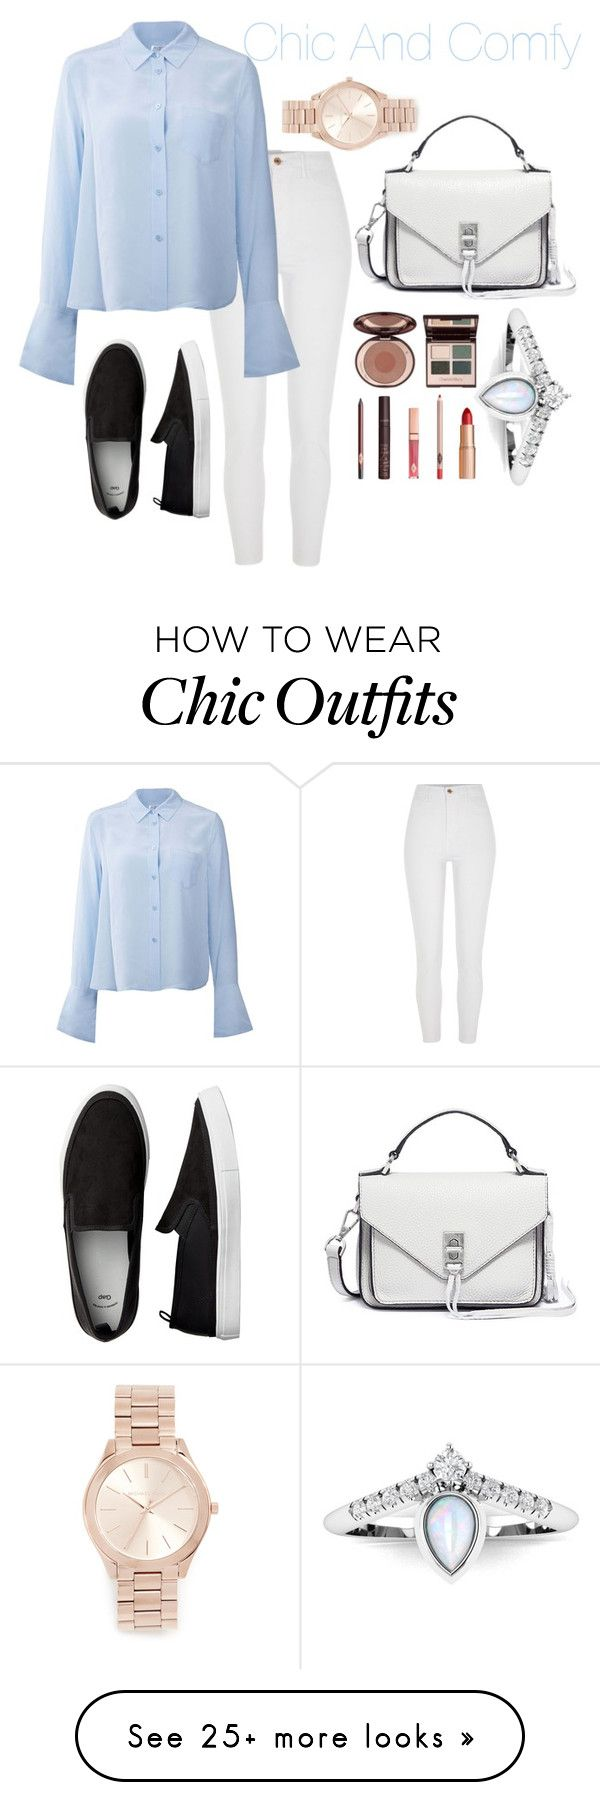 """""""Chic But Comfy"""" by zumretemts on Polyvore featuring Equipment, Michael Kors, Rebecca Minkoff and Charlotte Tilbury"""